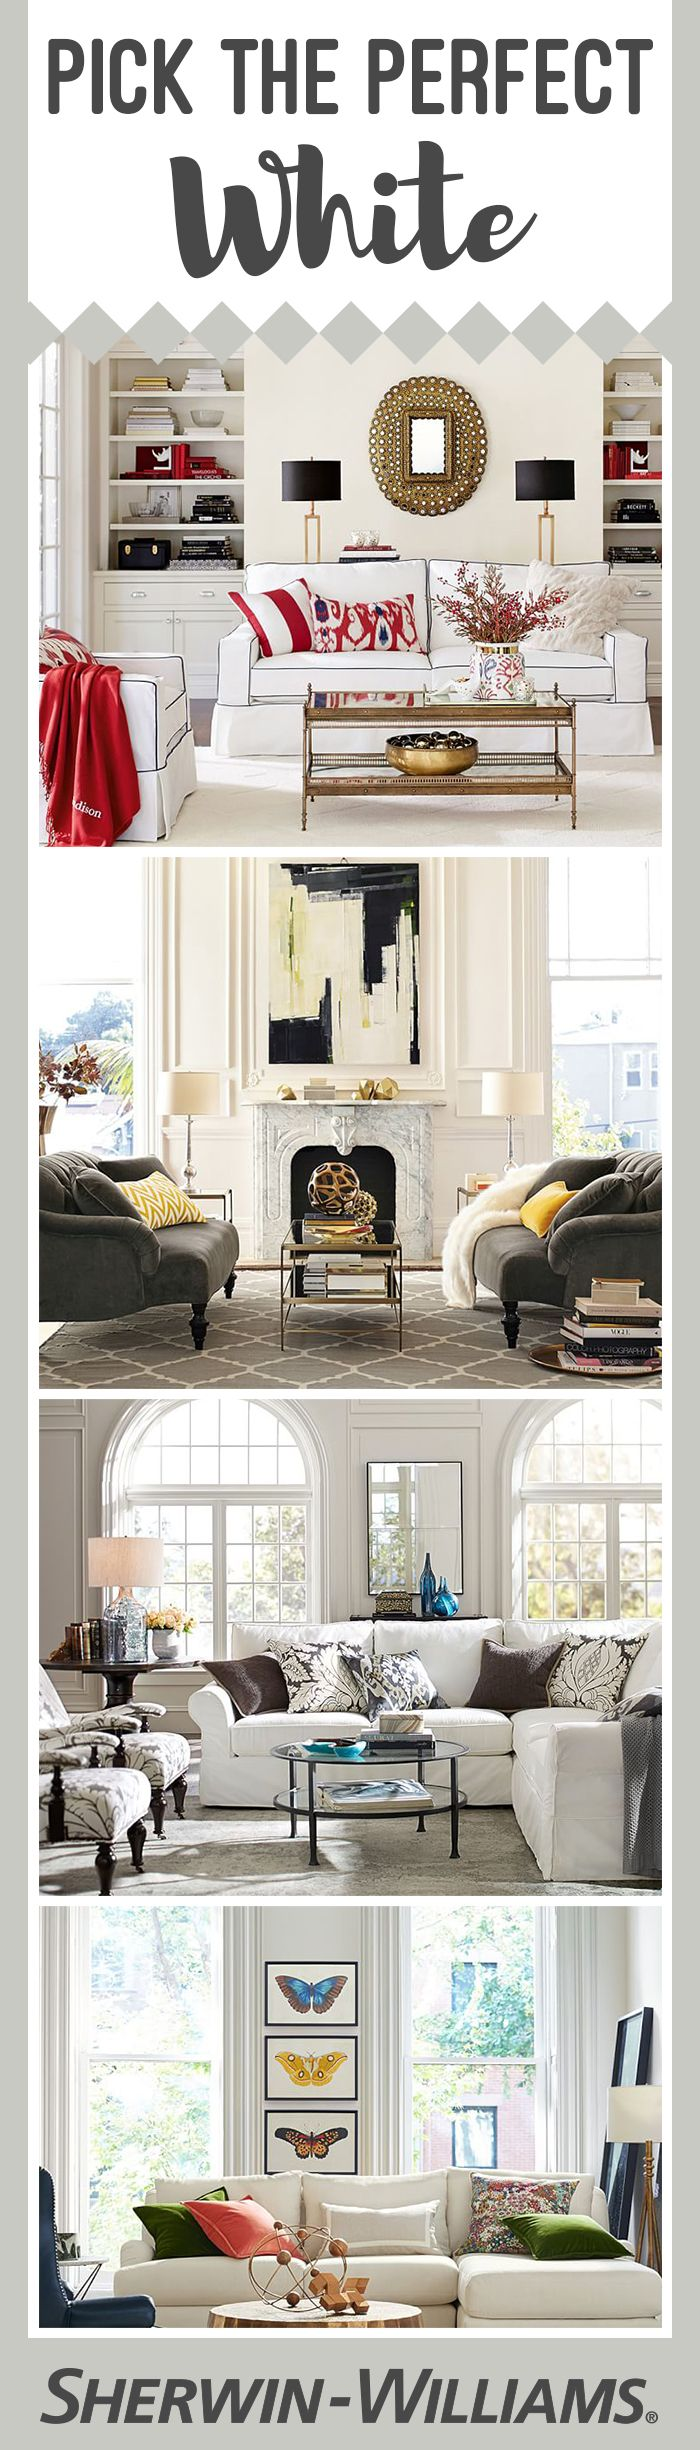 44 best images about Pottery Barn Paint Collection on Pinterest